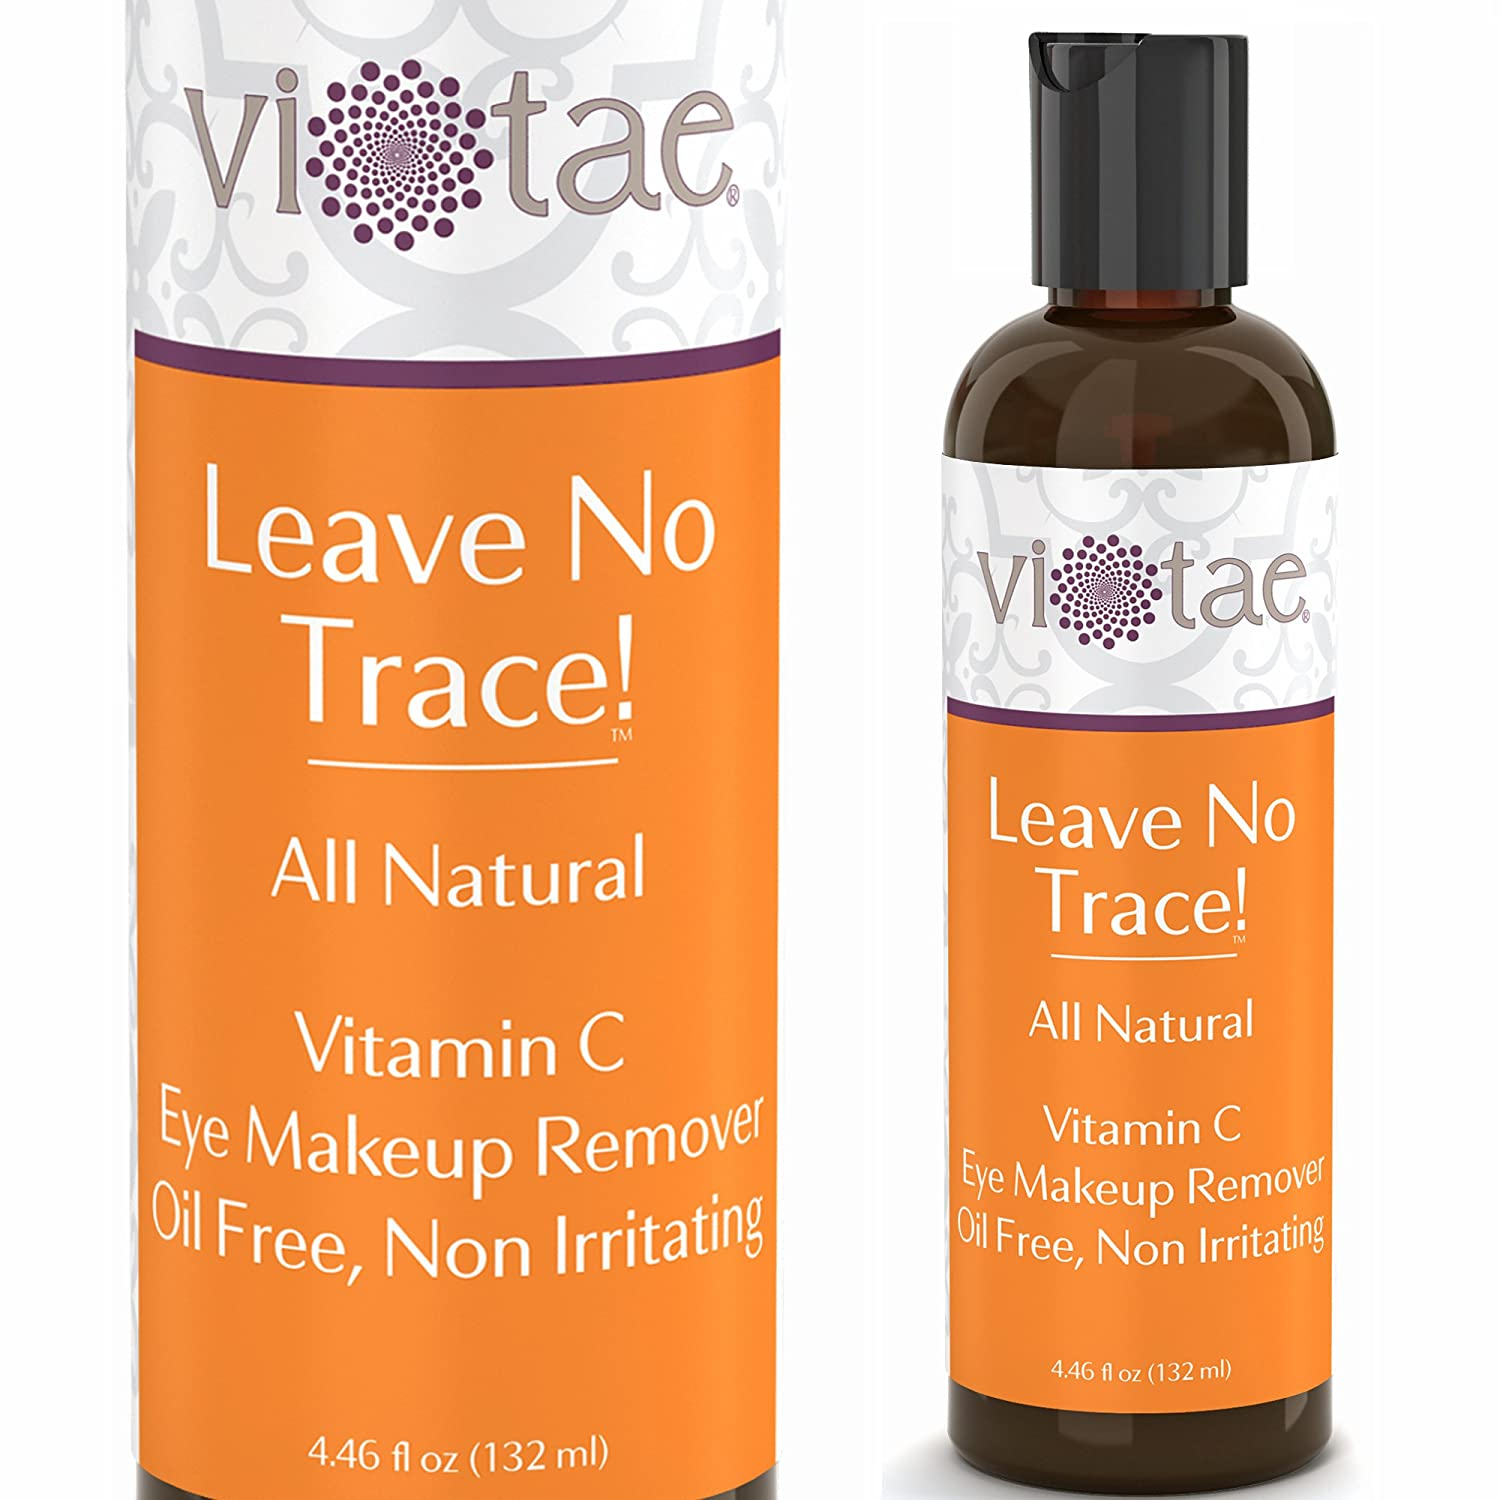 100% Natural Vitamin C Eye Makeup Remover, Oil Free, Non-Irritating - Strengthens Lashes & Nourish Delicate Eye Area - 'Leave No Trace!' by Vi-Tae - 4.46oz